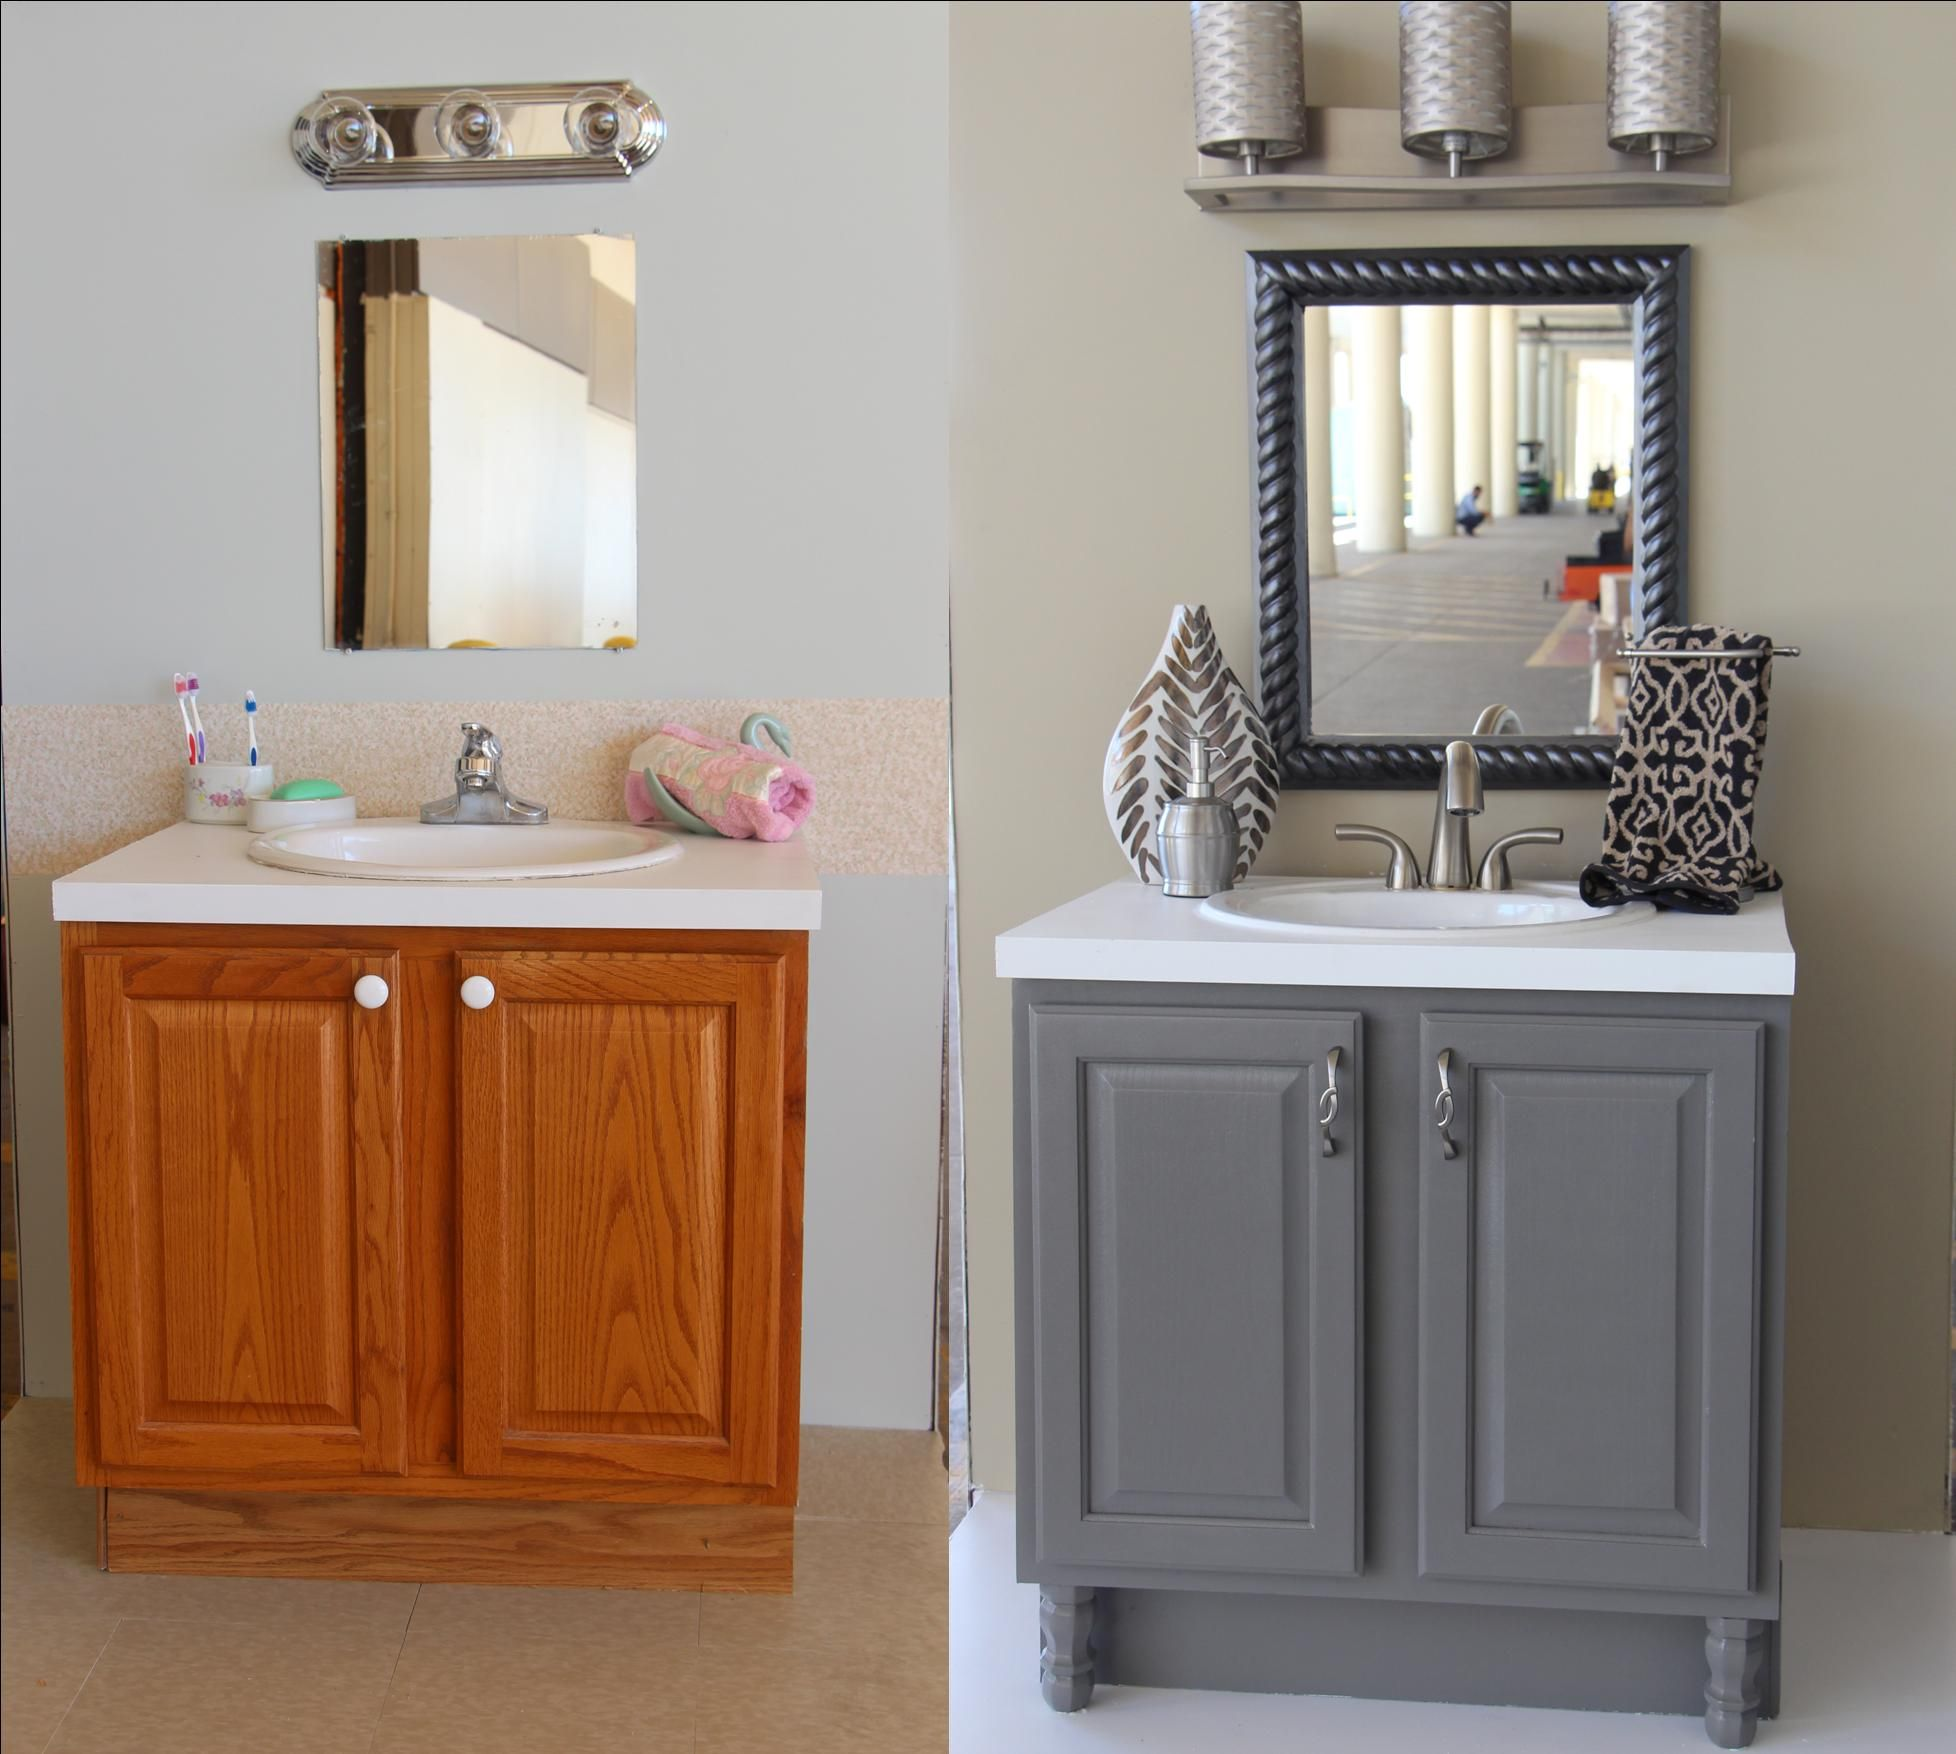 14 Best Bathroom Vanity Makeover Ideas Bathrooms Remodel Bathroom Makeover Bathroom Decor